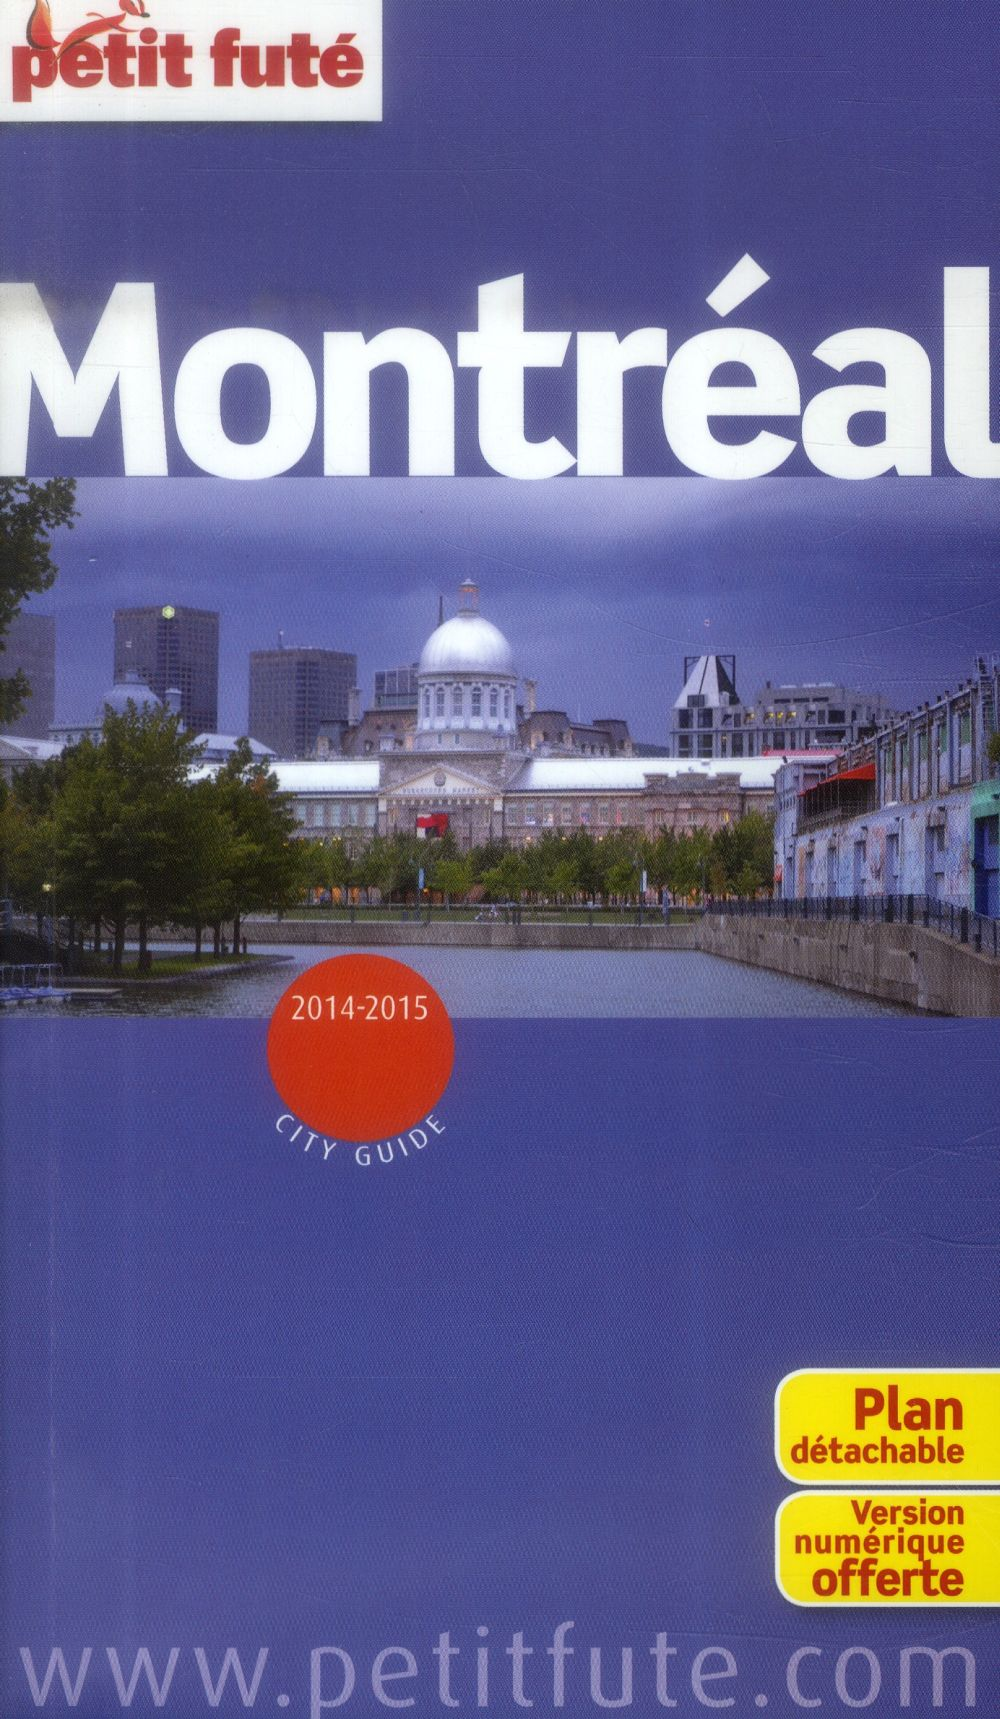 Guide Petit Fute ; City Guide; Montreal (Edition 2014)